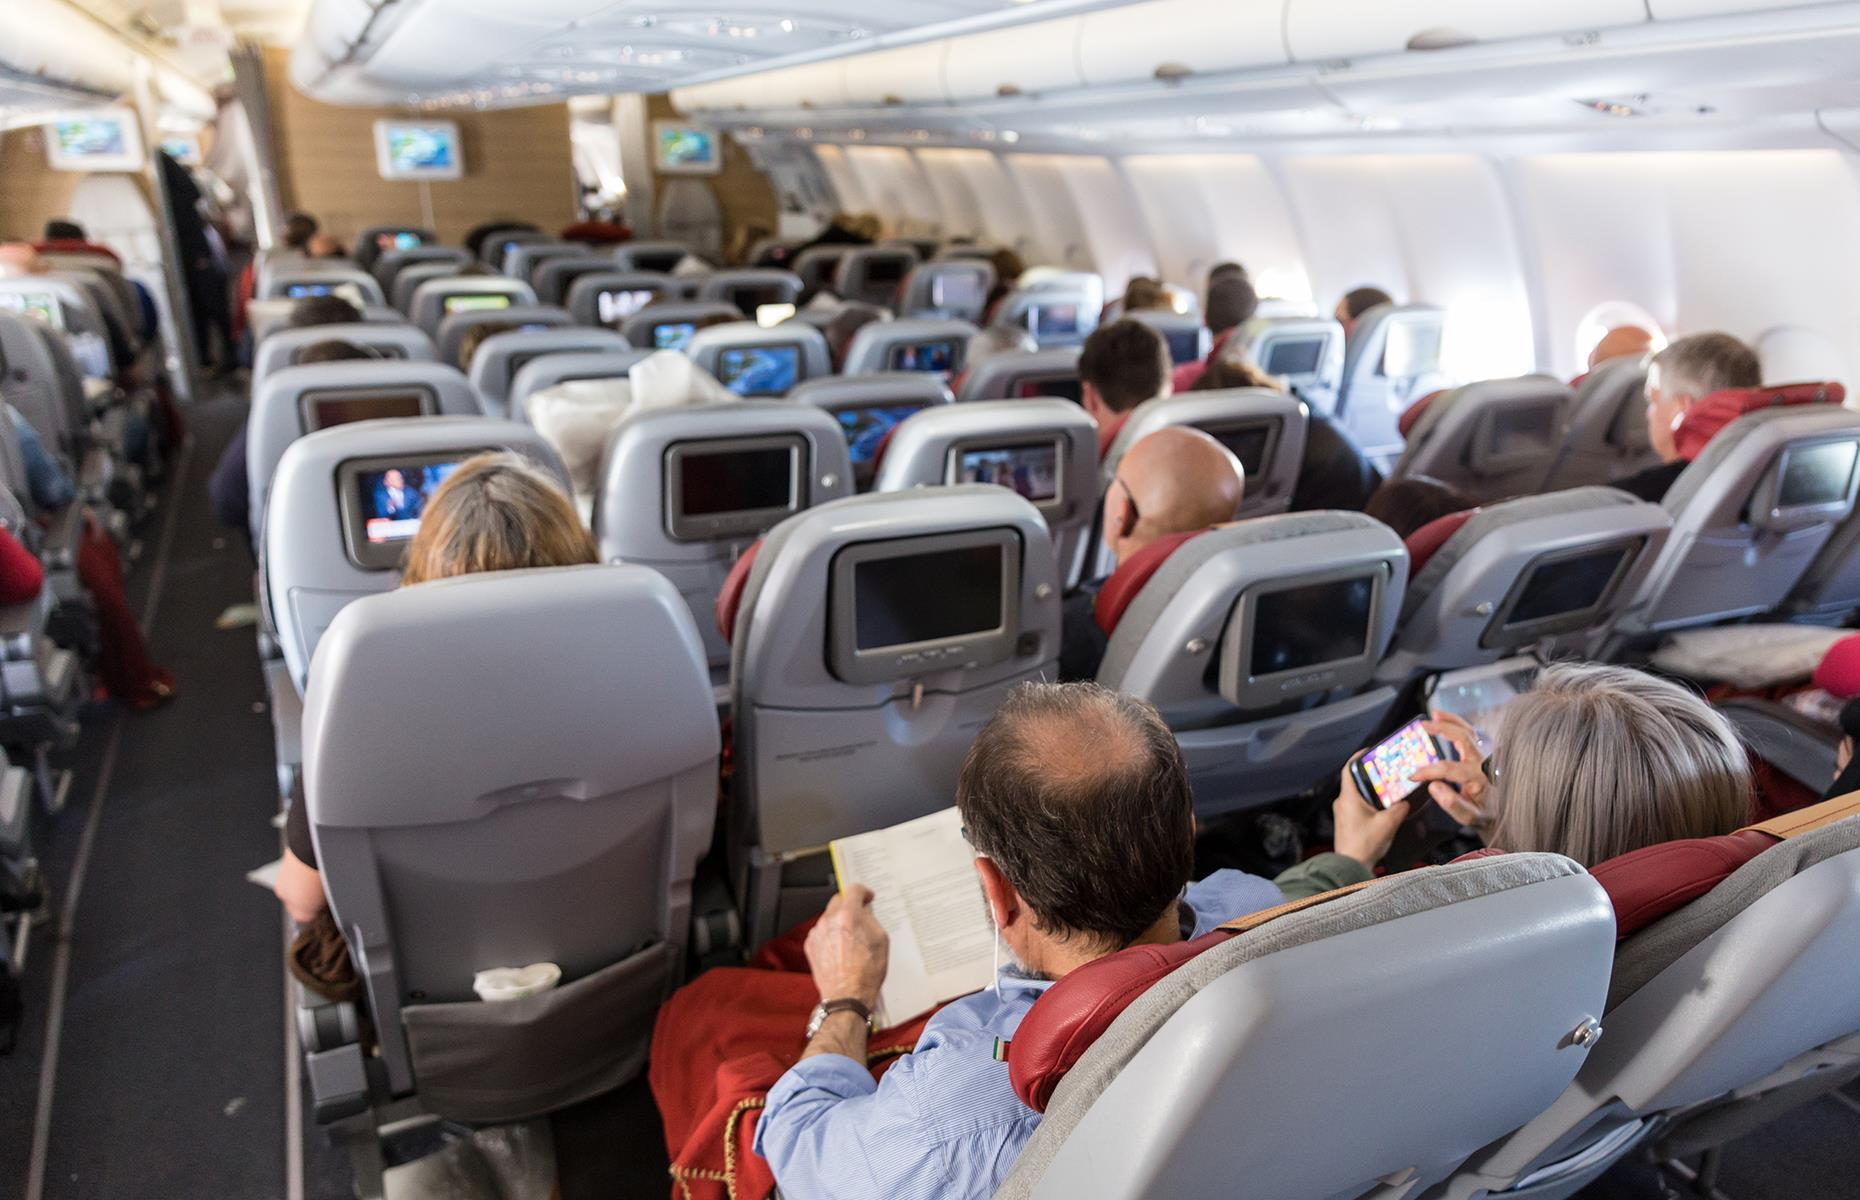 Slide 5 of 63: According to travel expertSimon Calder, flights are overbooked in order to keep fares down. The thinking is that customers regularly don't show up for flightsso overbooking is an easy way for the airline to make extra profit. It's also worse for the environment when planes fly at less than capacity. Theoretically, if the flight is blown(more customers than seats), the airline can offer incentives to passengers who don't mind volunteering to give up their spot. But some recent high profile cases have seenpassengers dragged offoverbooked flights.